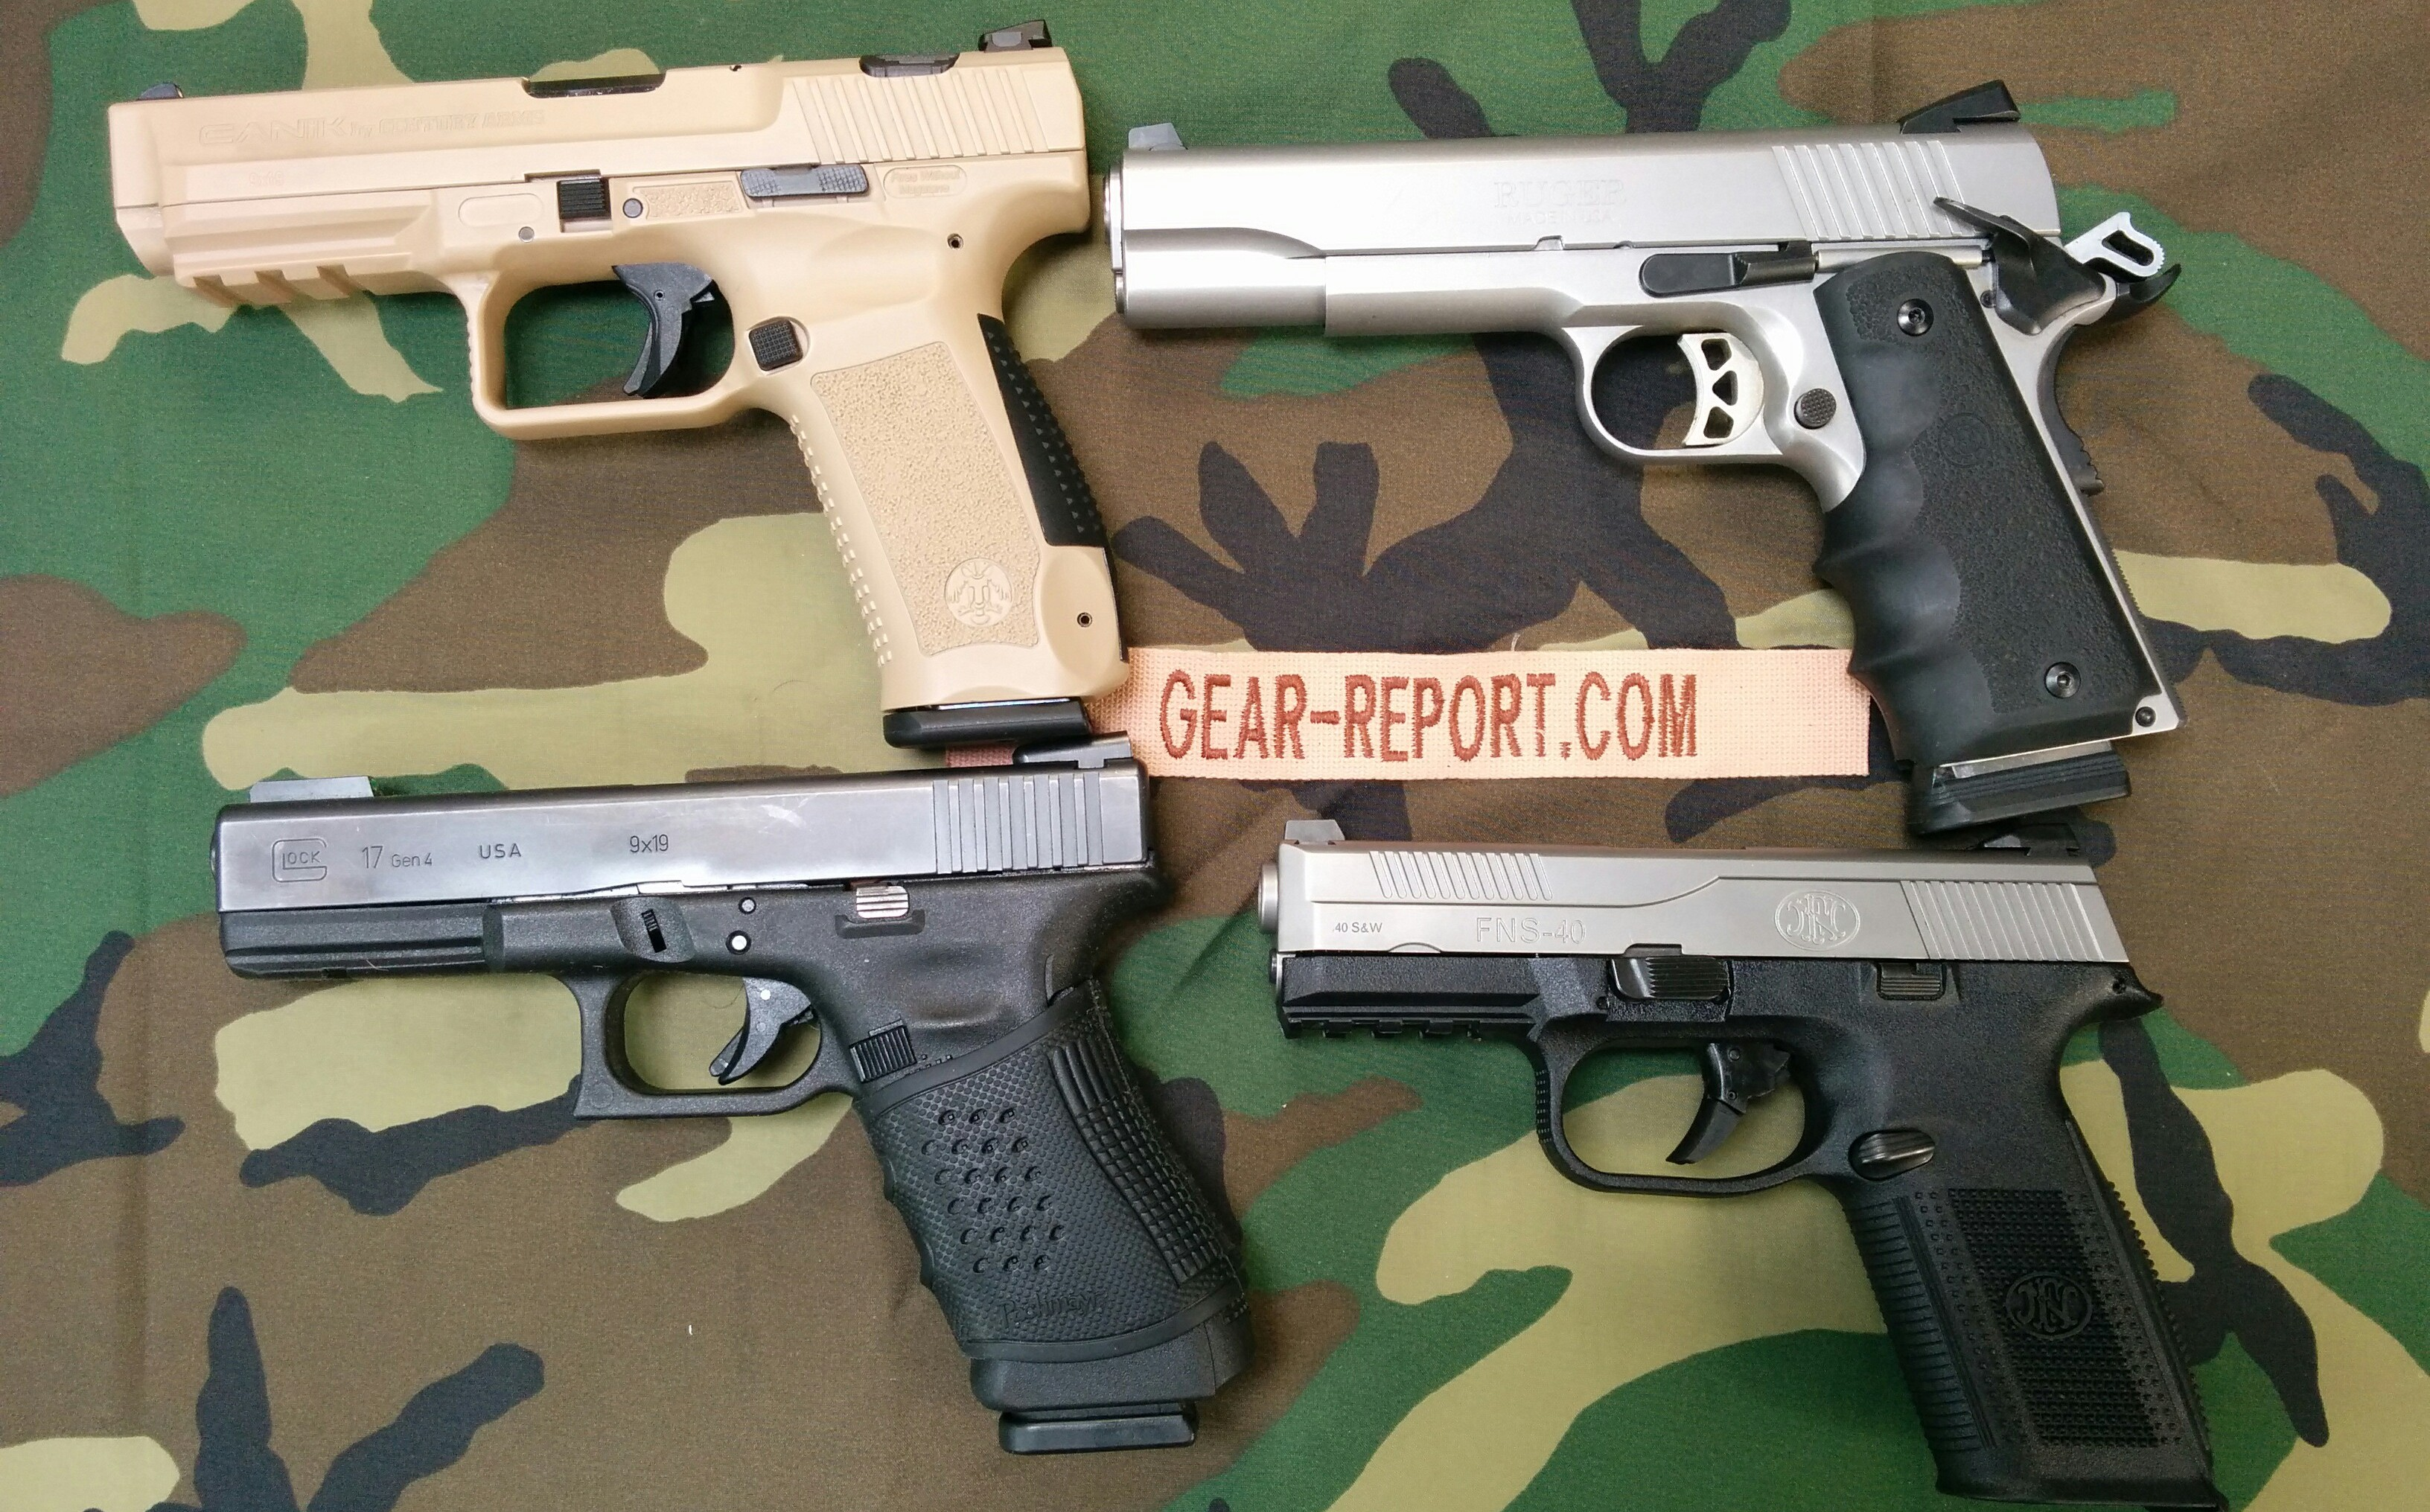 Canik TP9SF Elite - Review After 1,000 Trigger Pulls and 6 Months